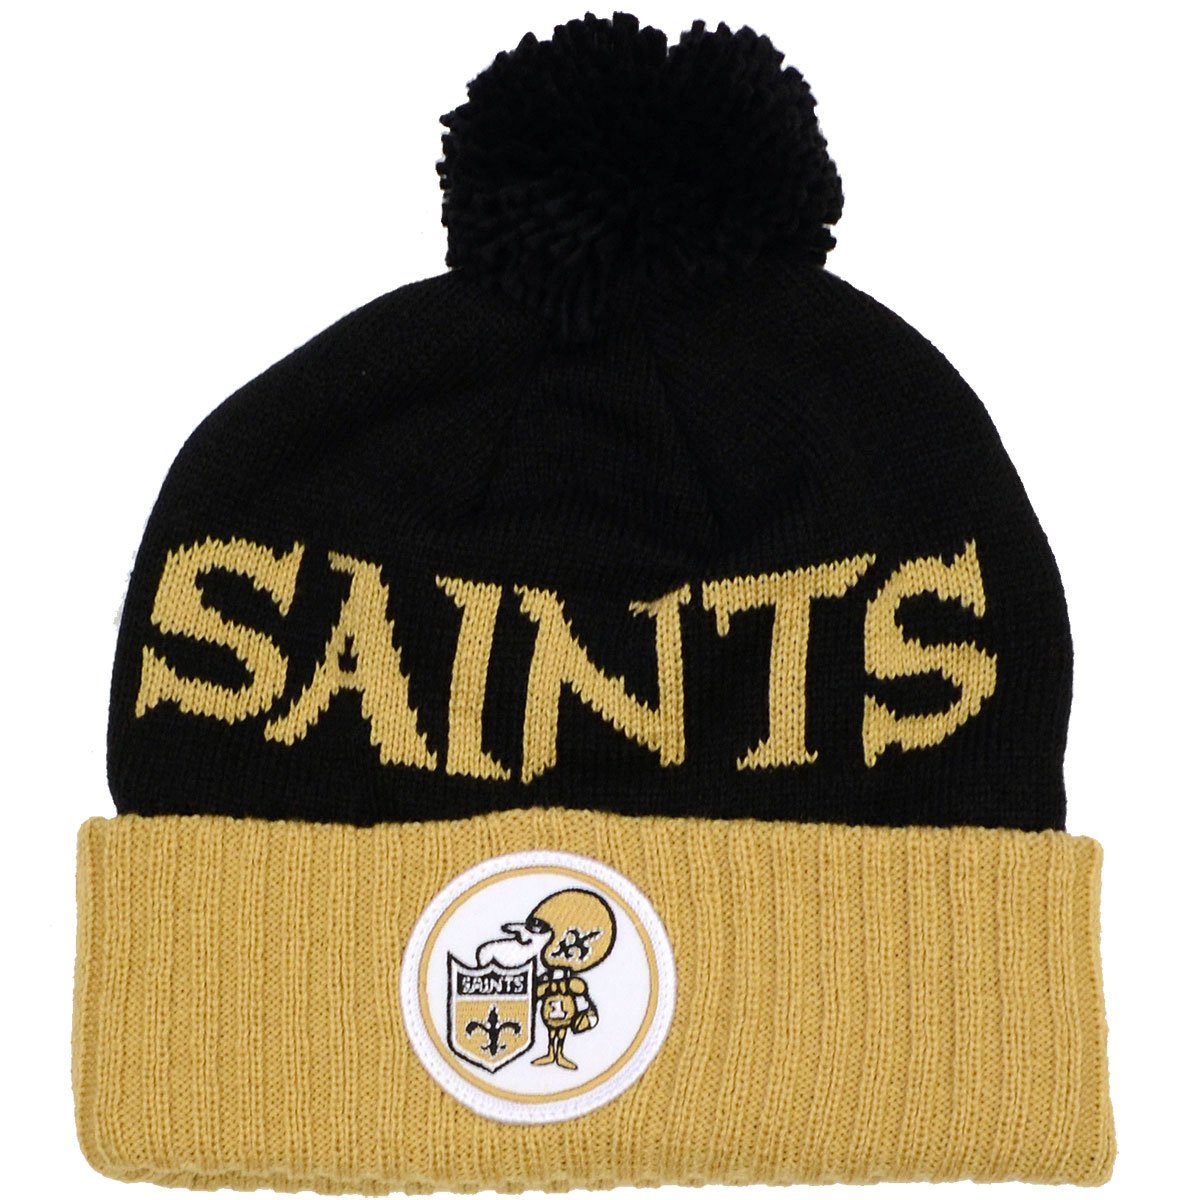 NFL Mitchell & Ness Throwback Cuffed Pomニット帽子  ニューオリンズセイント B005N3X33A